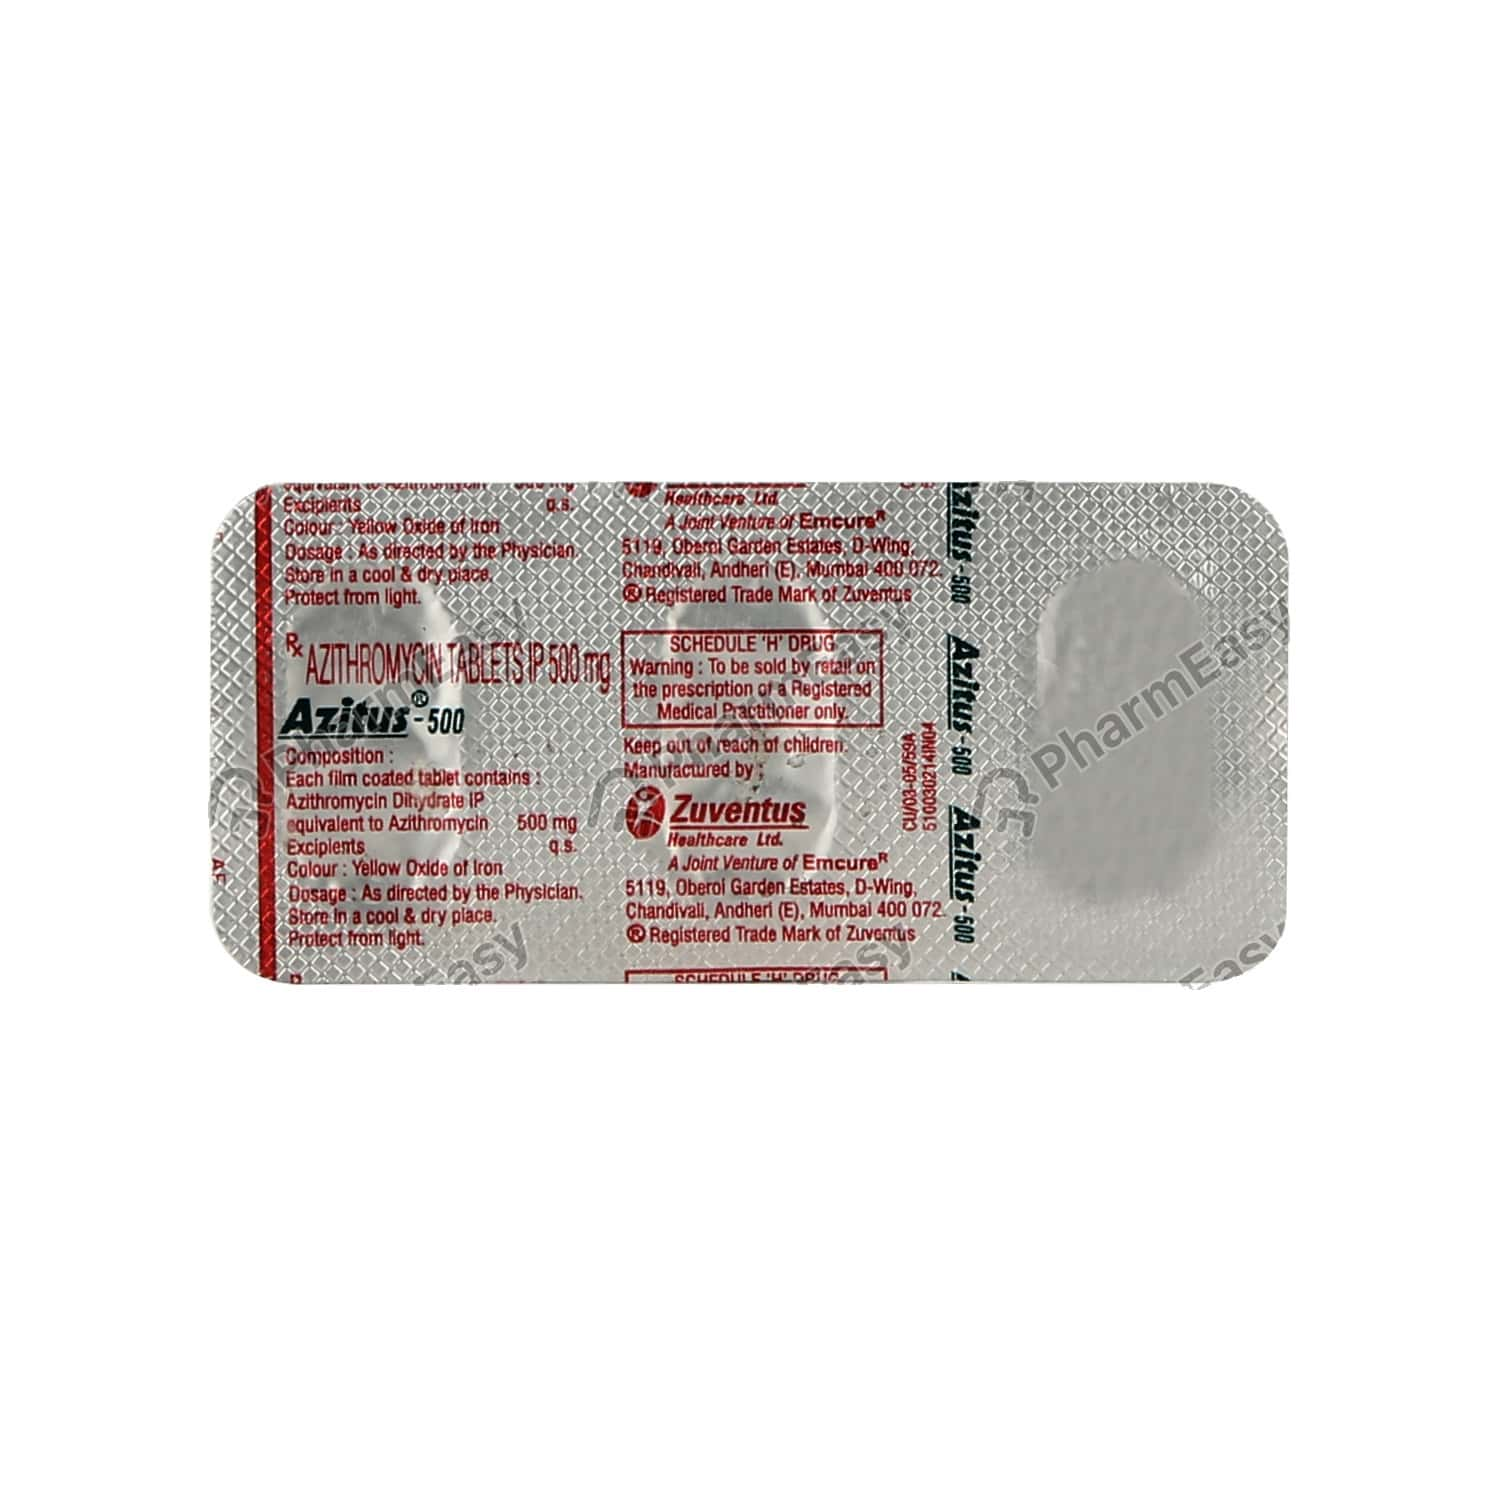 Azitus 500mg Tablet